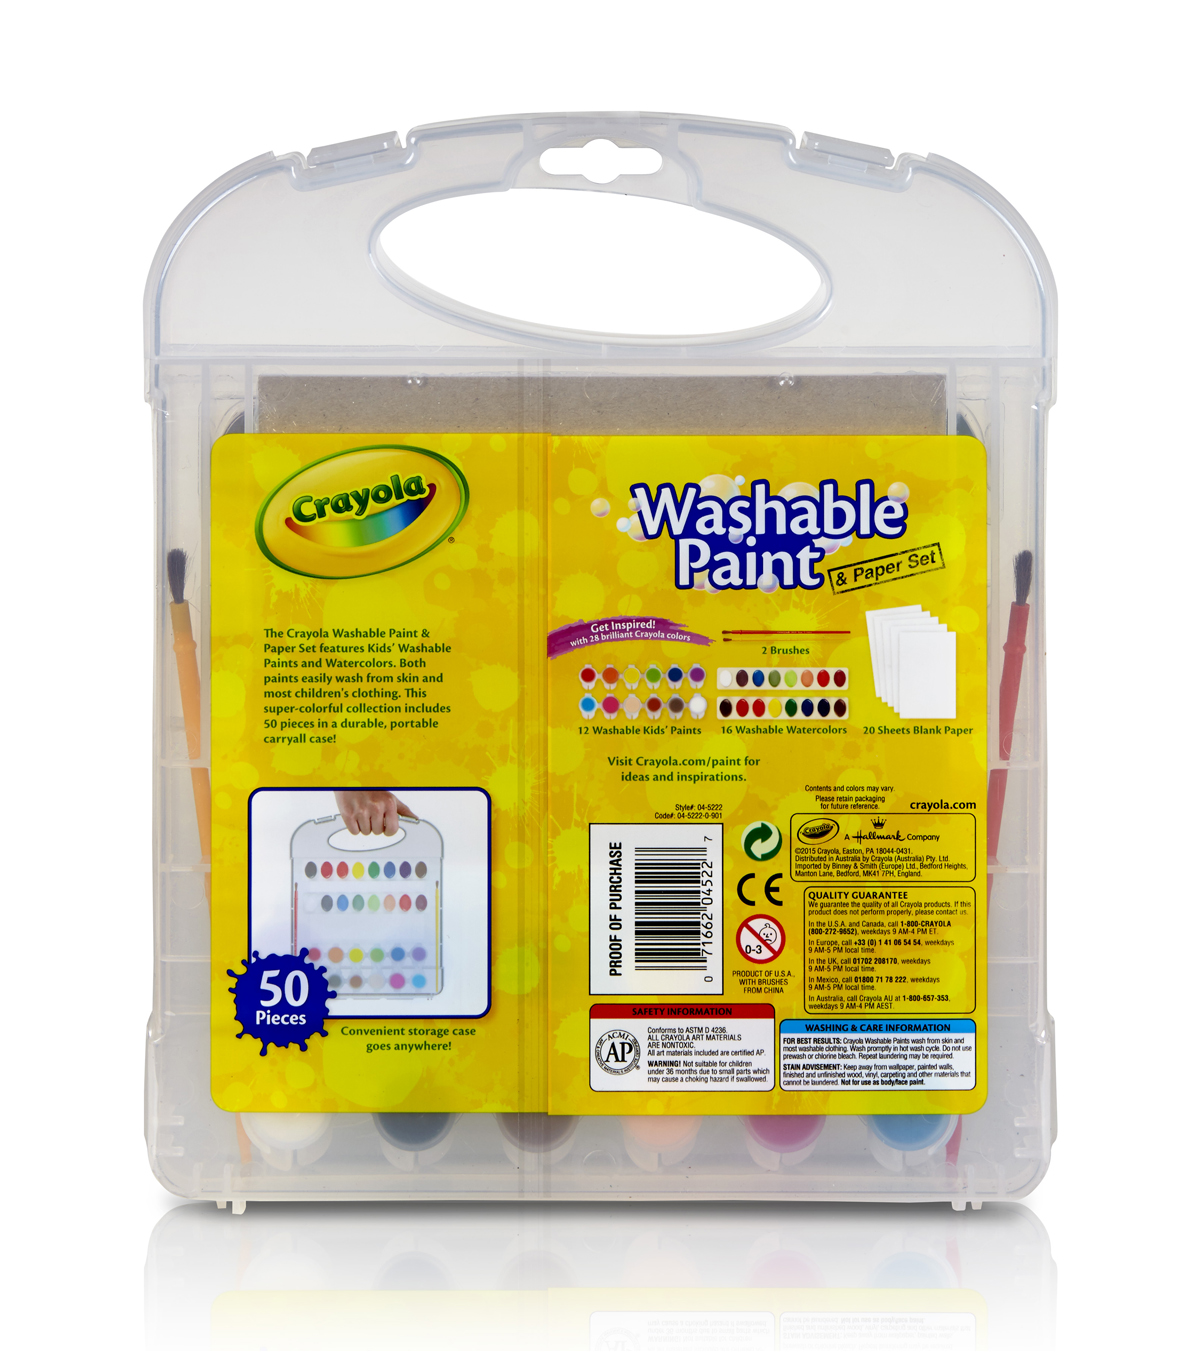 Crayola Washable Paint & Paper Set 50pc